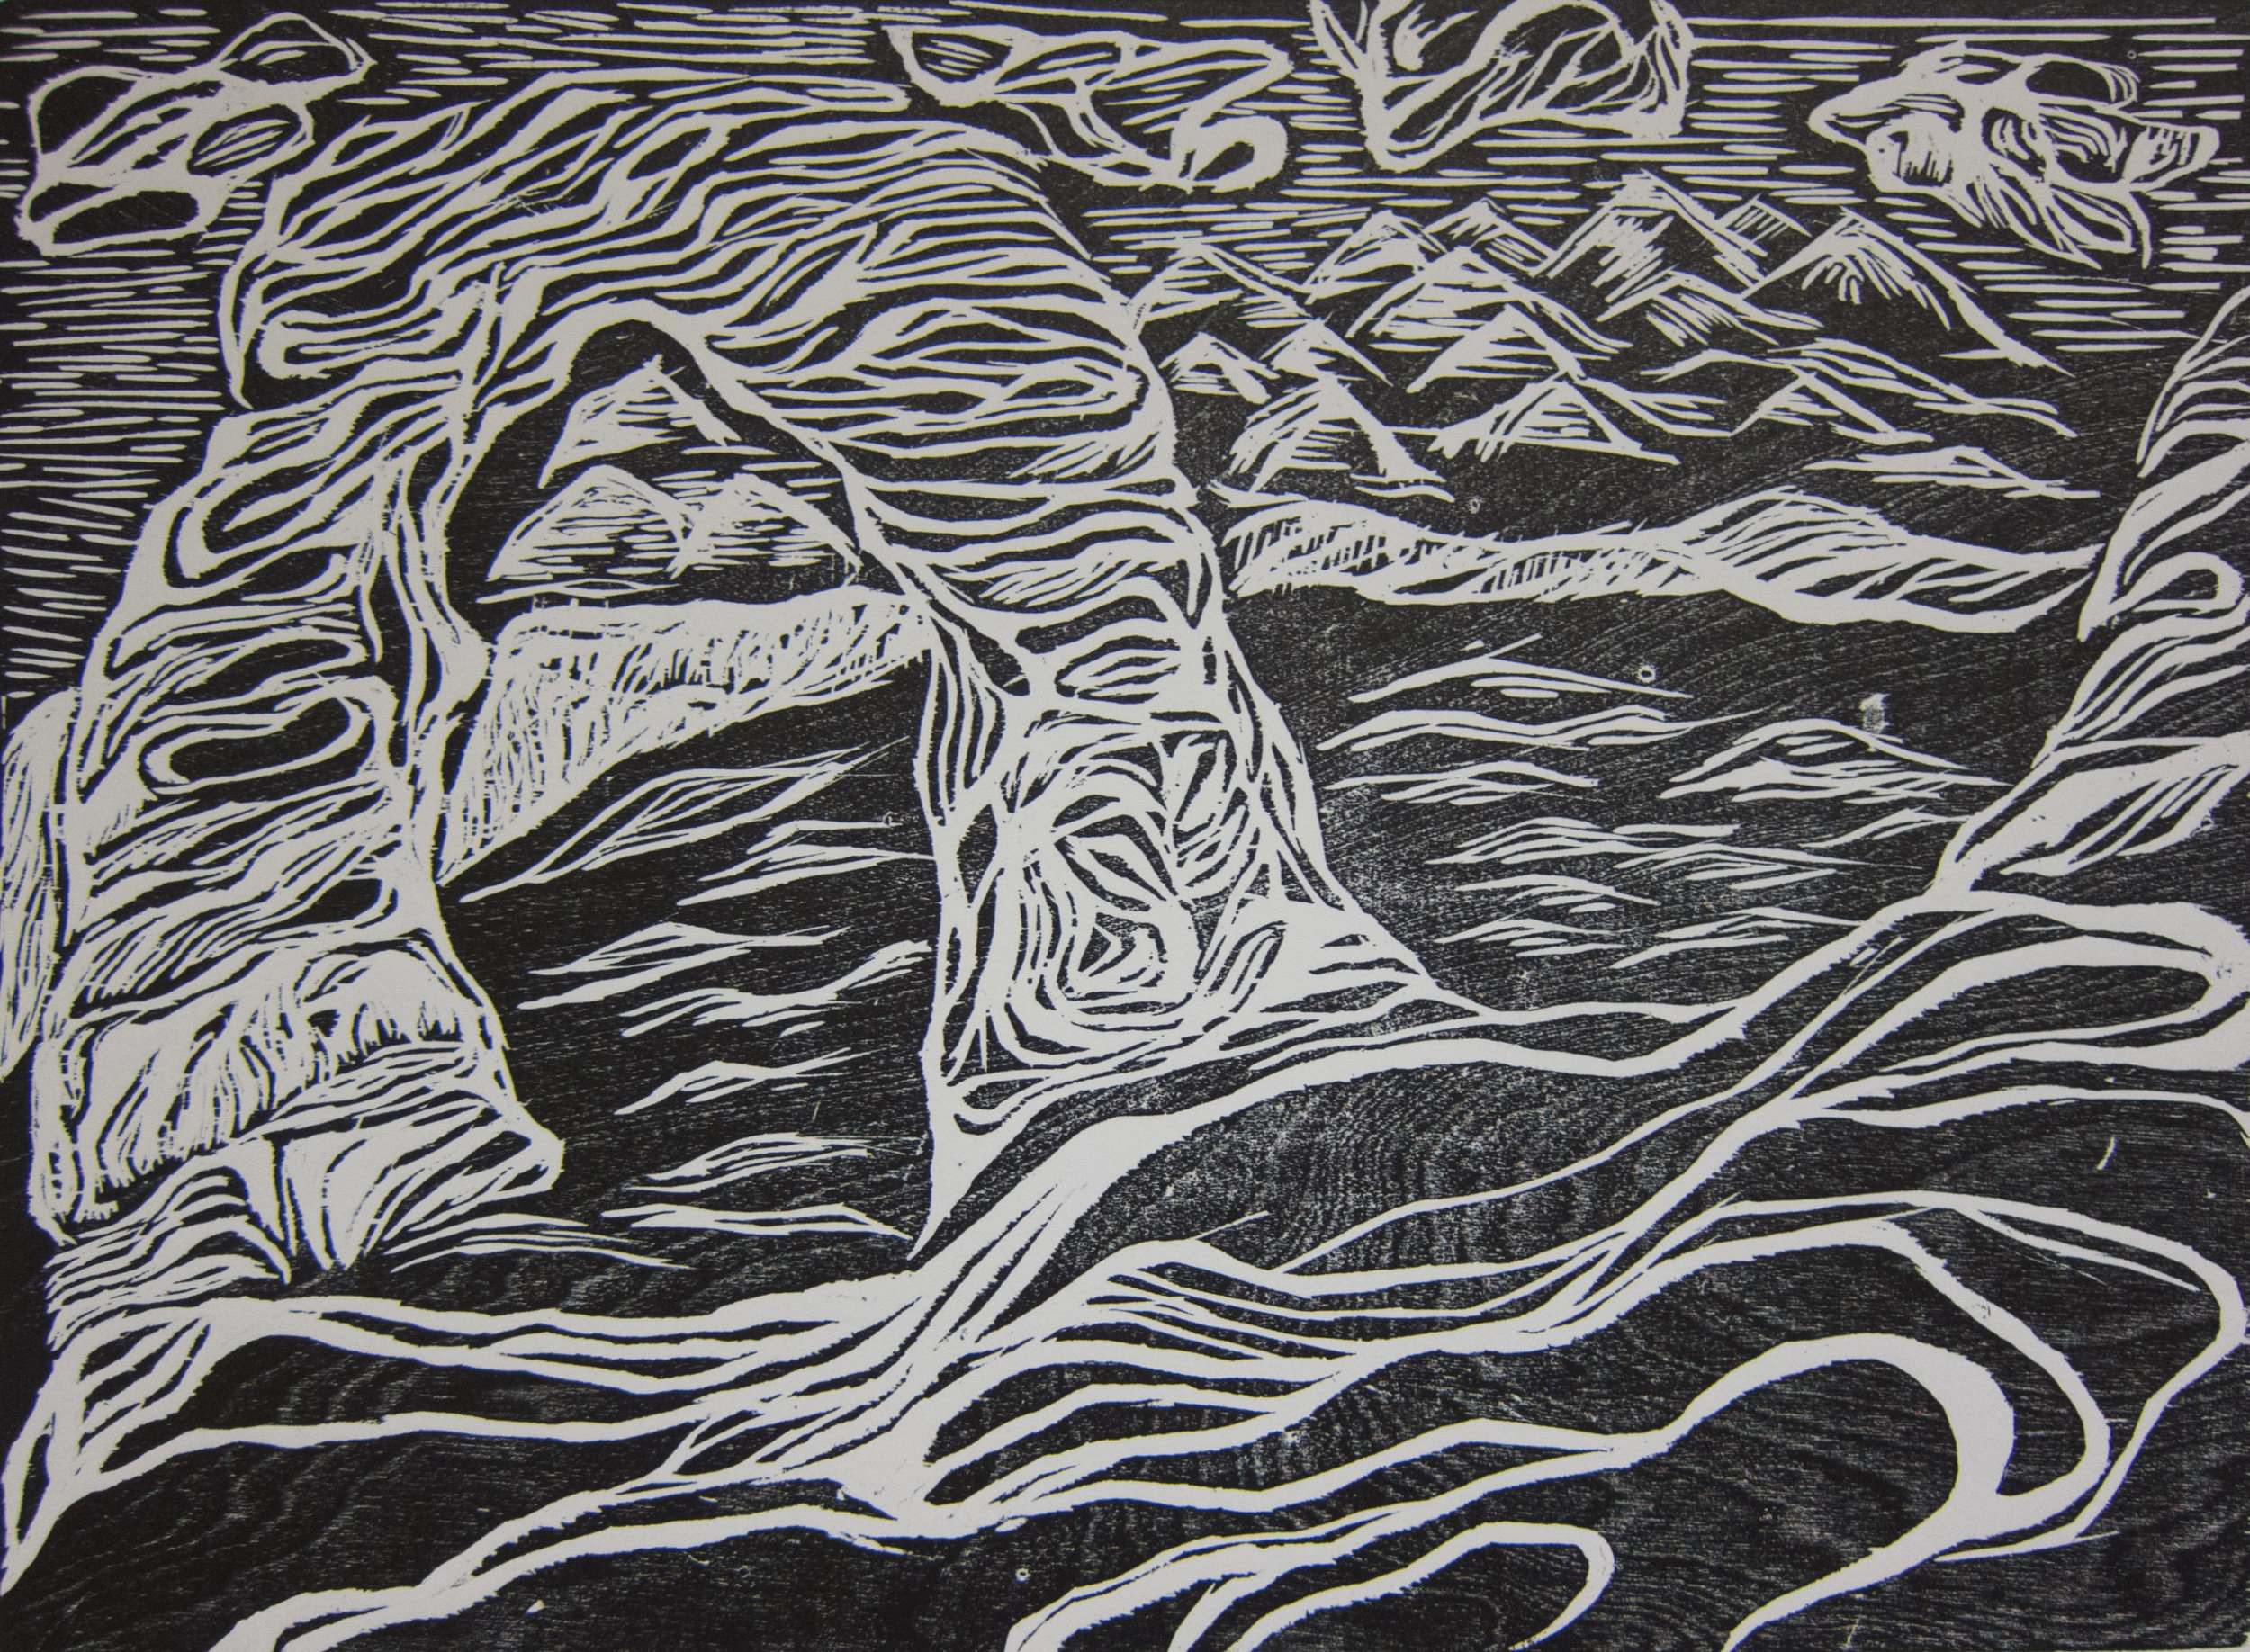 Woodcut/Relief